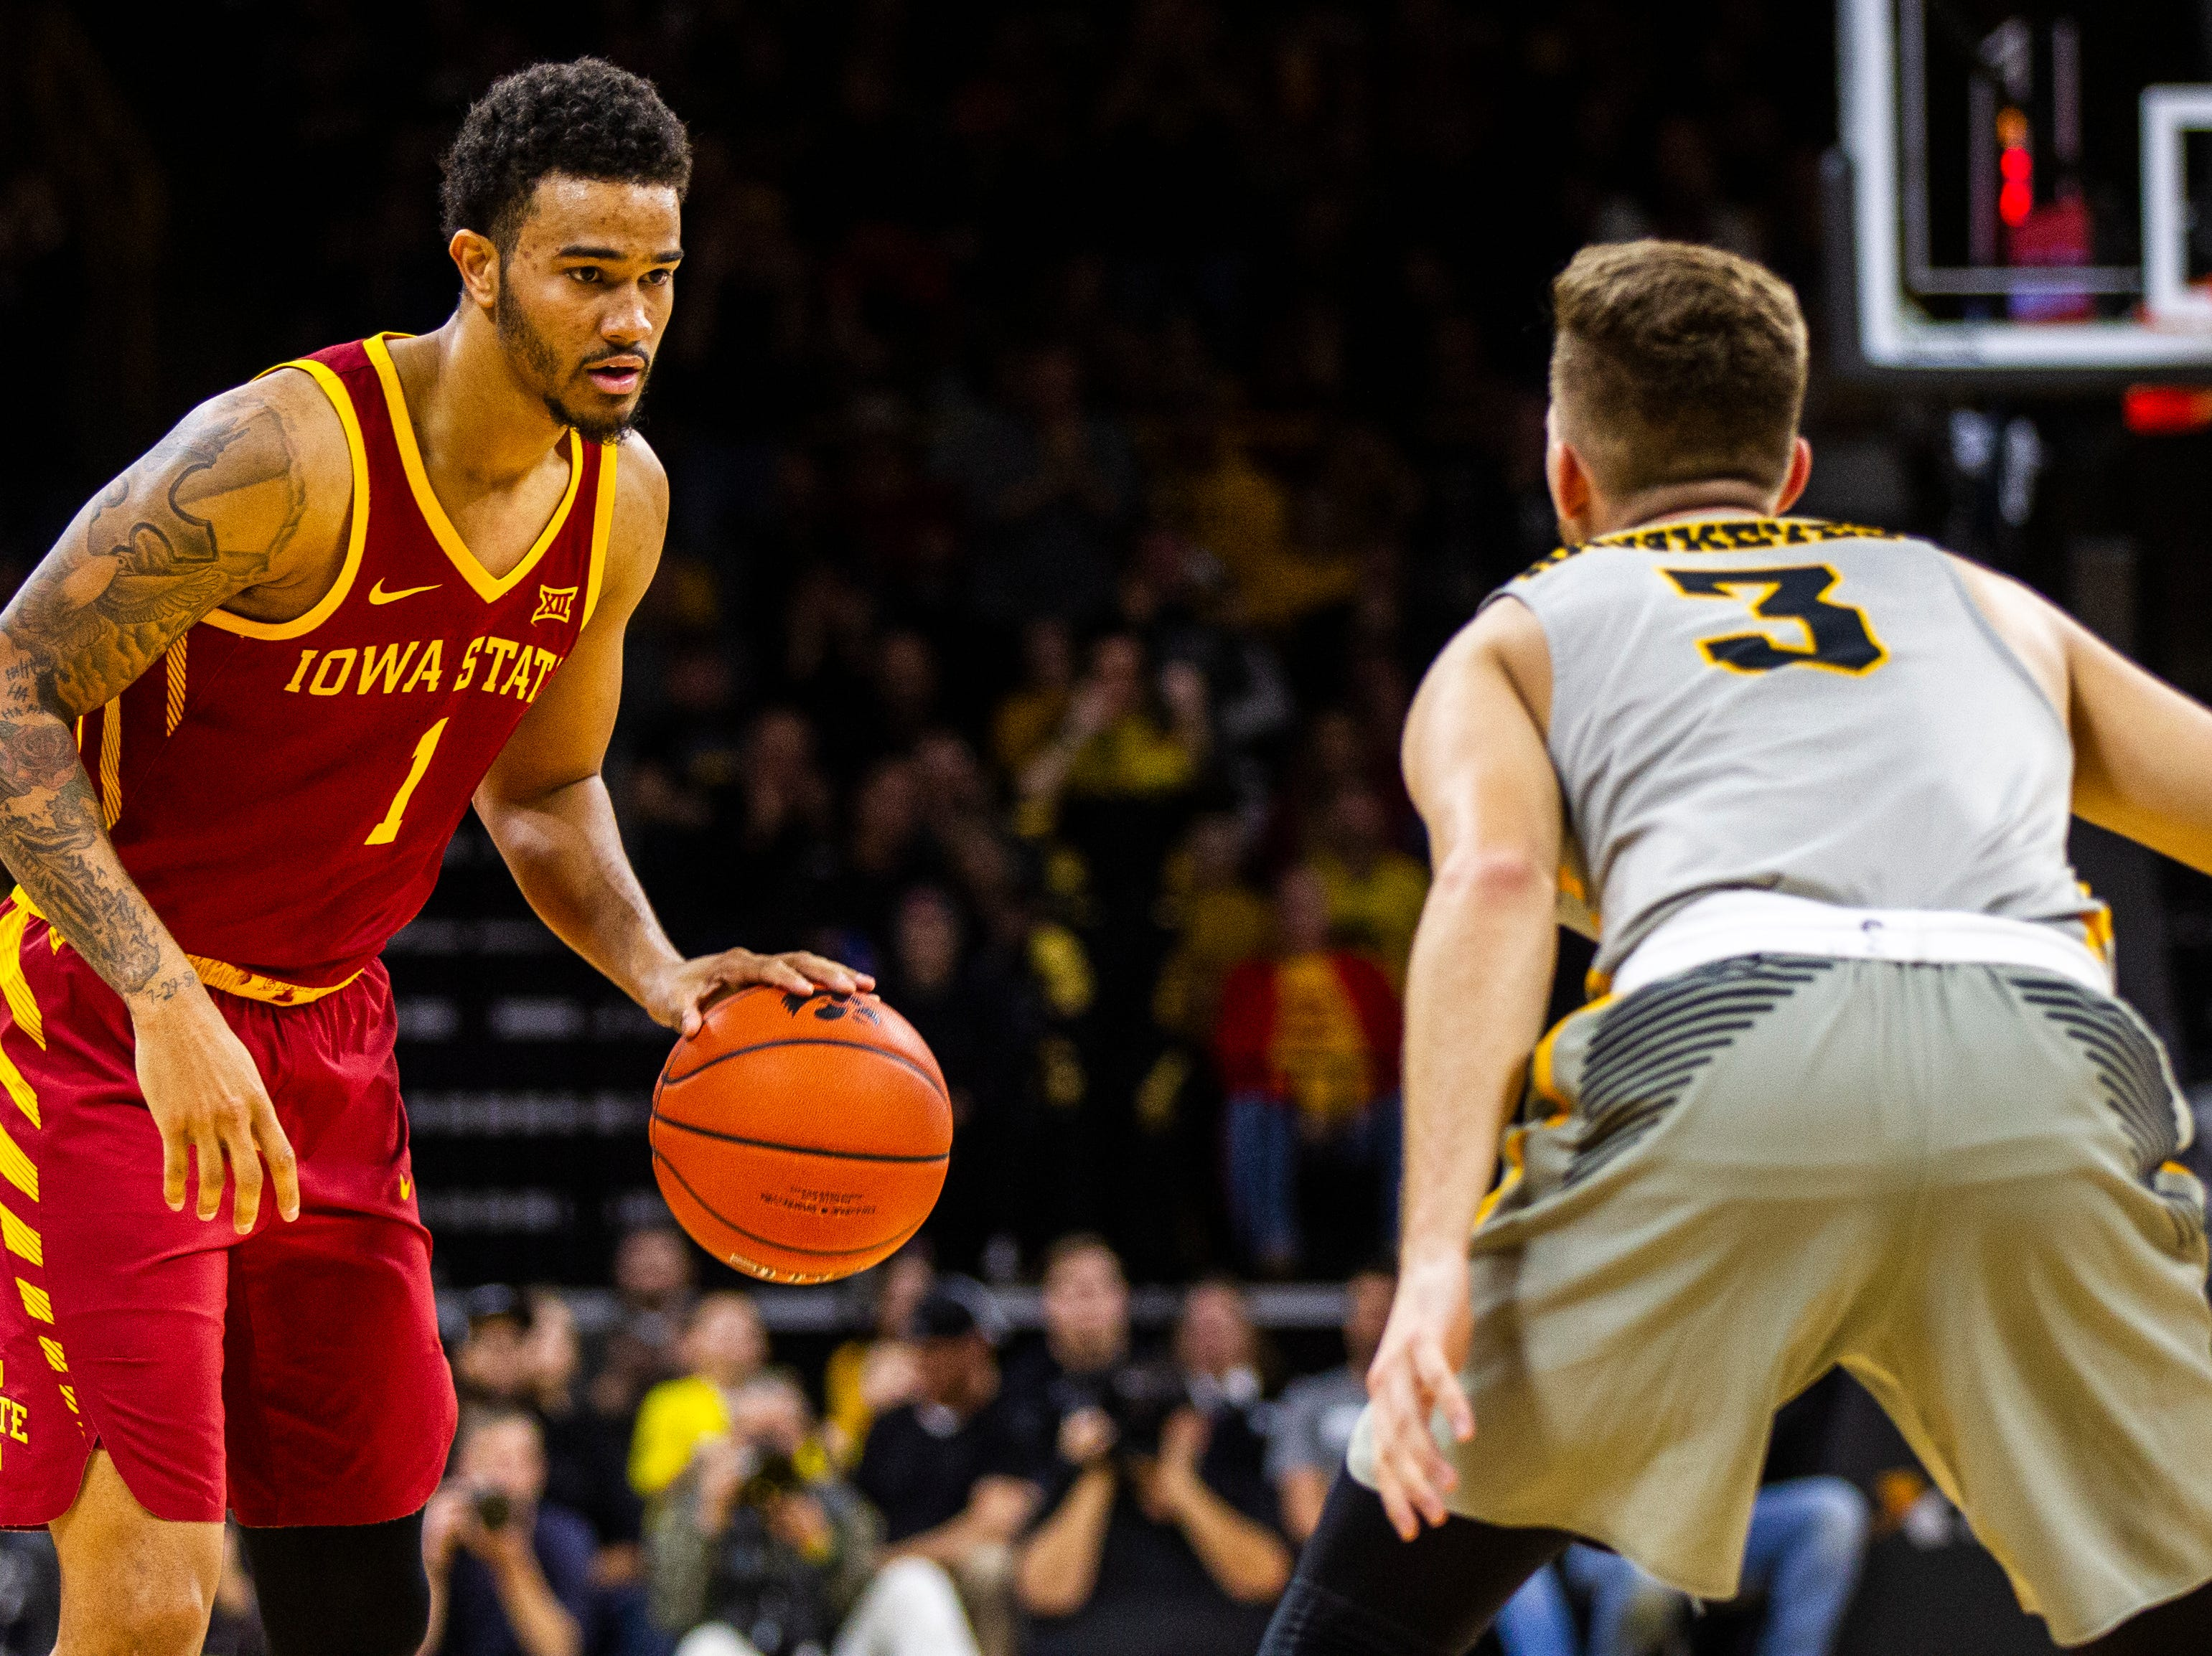 Iowa State guard Nick Weiler-Babb (1) gets defended by Iowa guard Jordan Bohannon (3) during a NCAA Cy-Hawk series men's basketball game on Thursday, Dec. 6, 2018, at Carver-Hawkeye Arena in Iowa City.